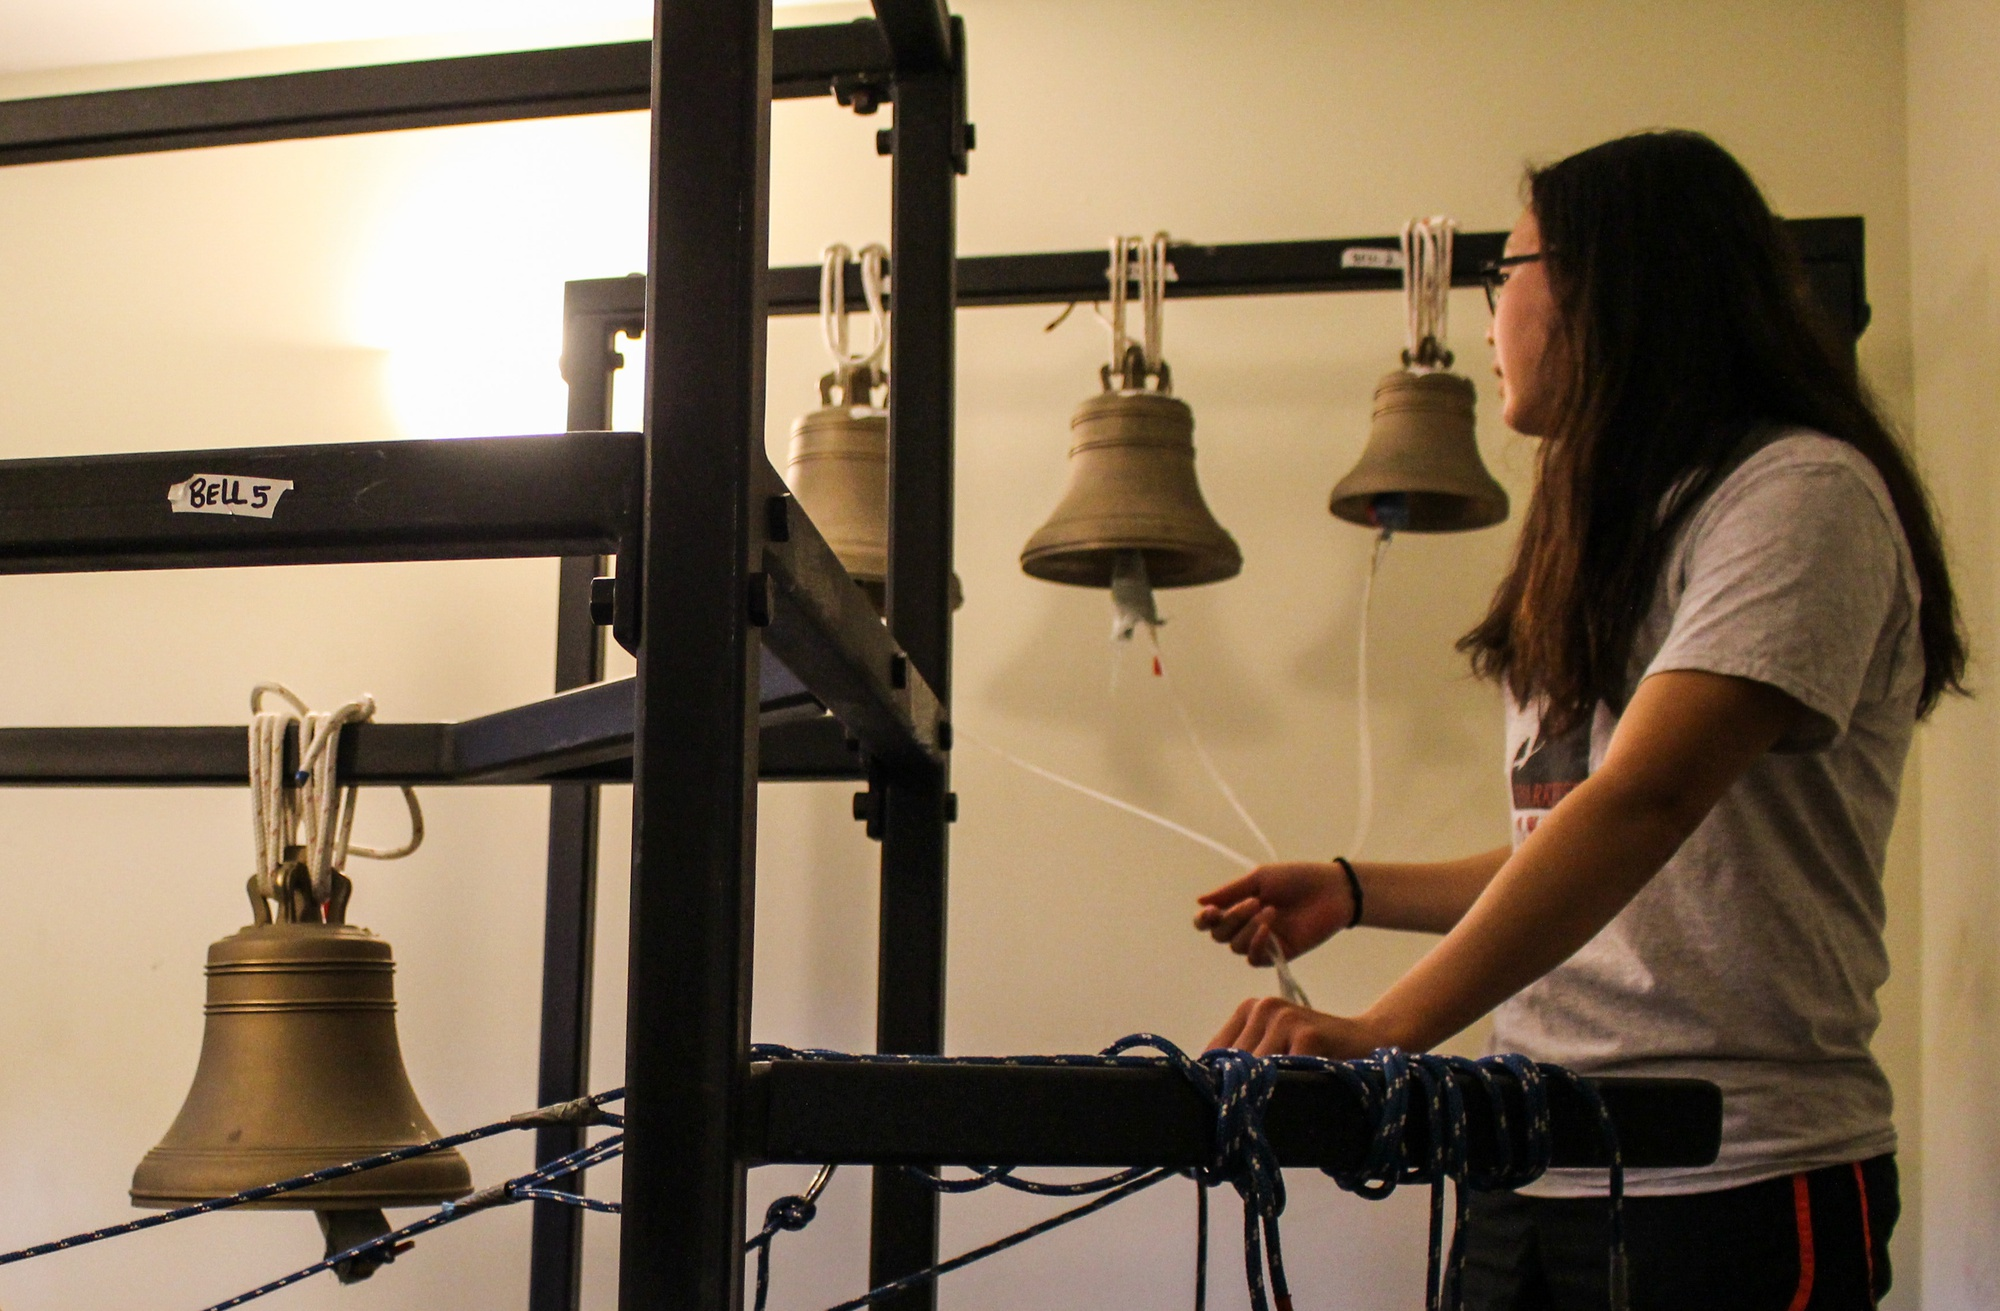 Jessica Ding '19, a member of the Lowell House Society of Russian Bell Ringers, rings the bells in the basement of 20 Prescott Street.